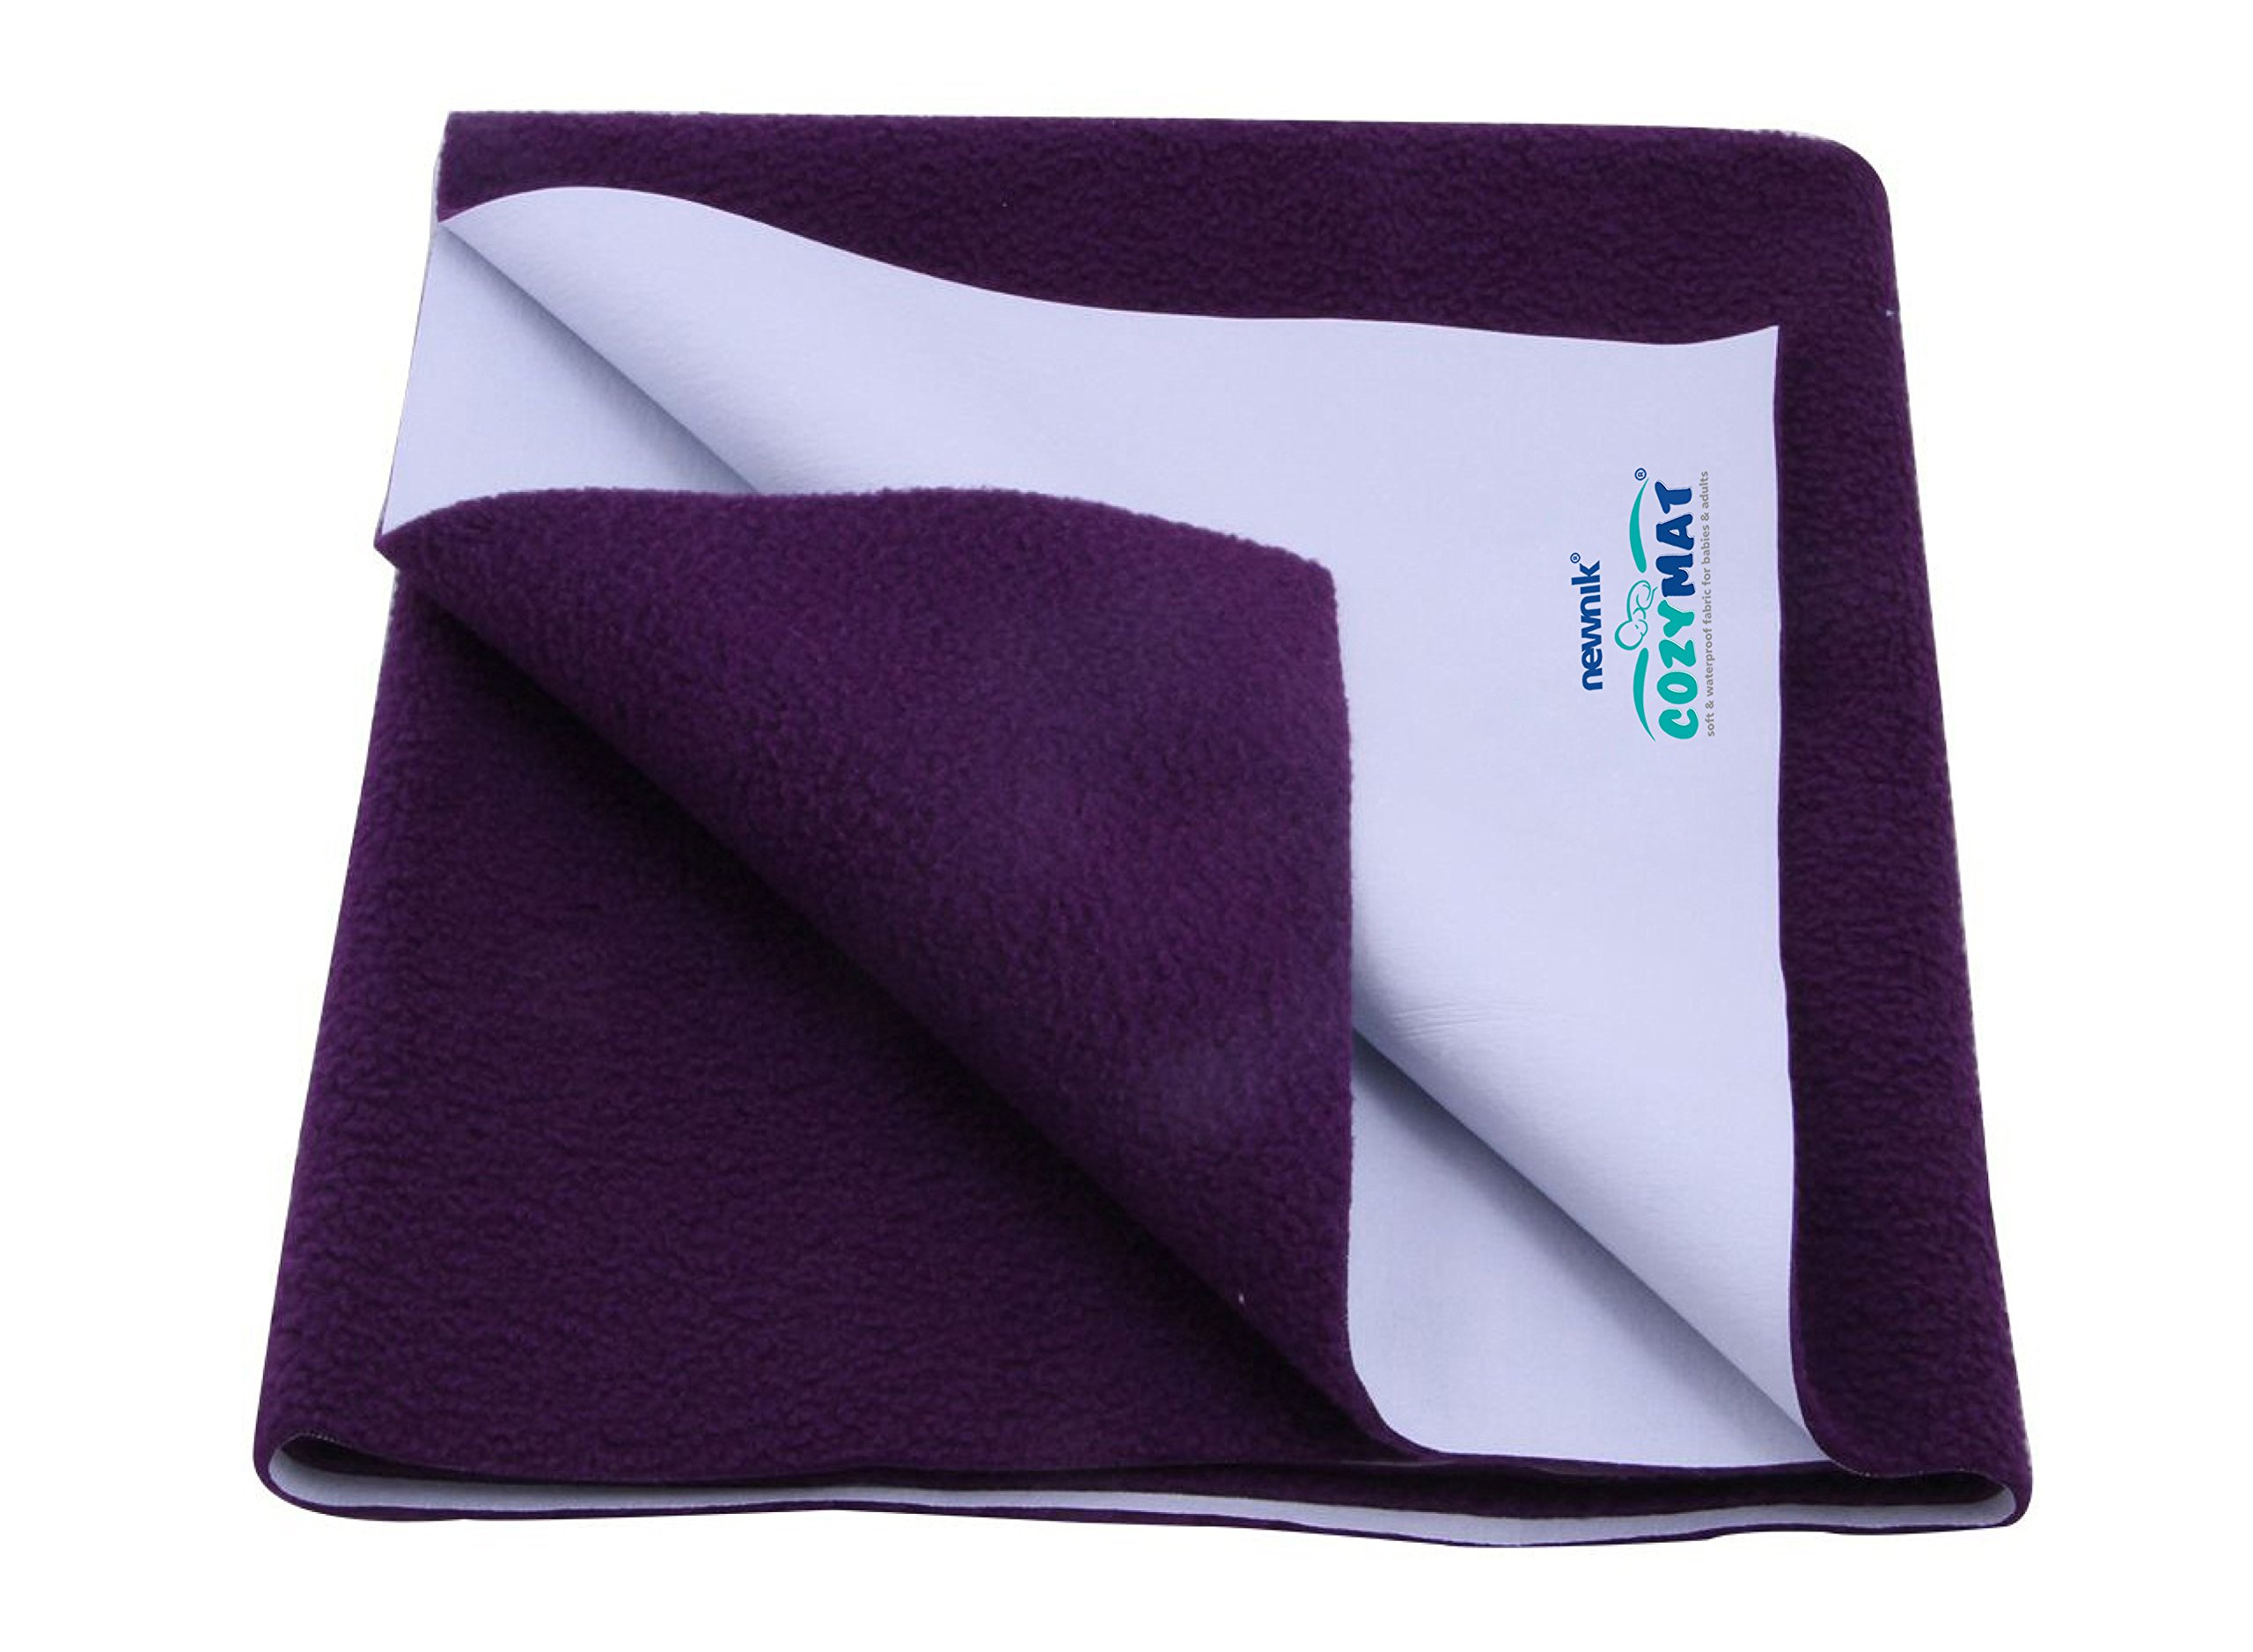 cozymat Dry Sheet Waterproof Breathable Bed Protector (Size: 70cm X 50cm) Plum, Small by cozymat